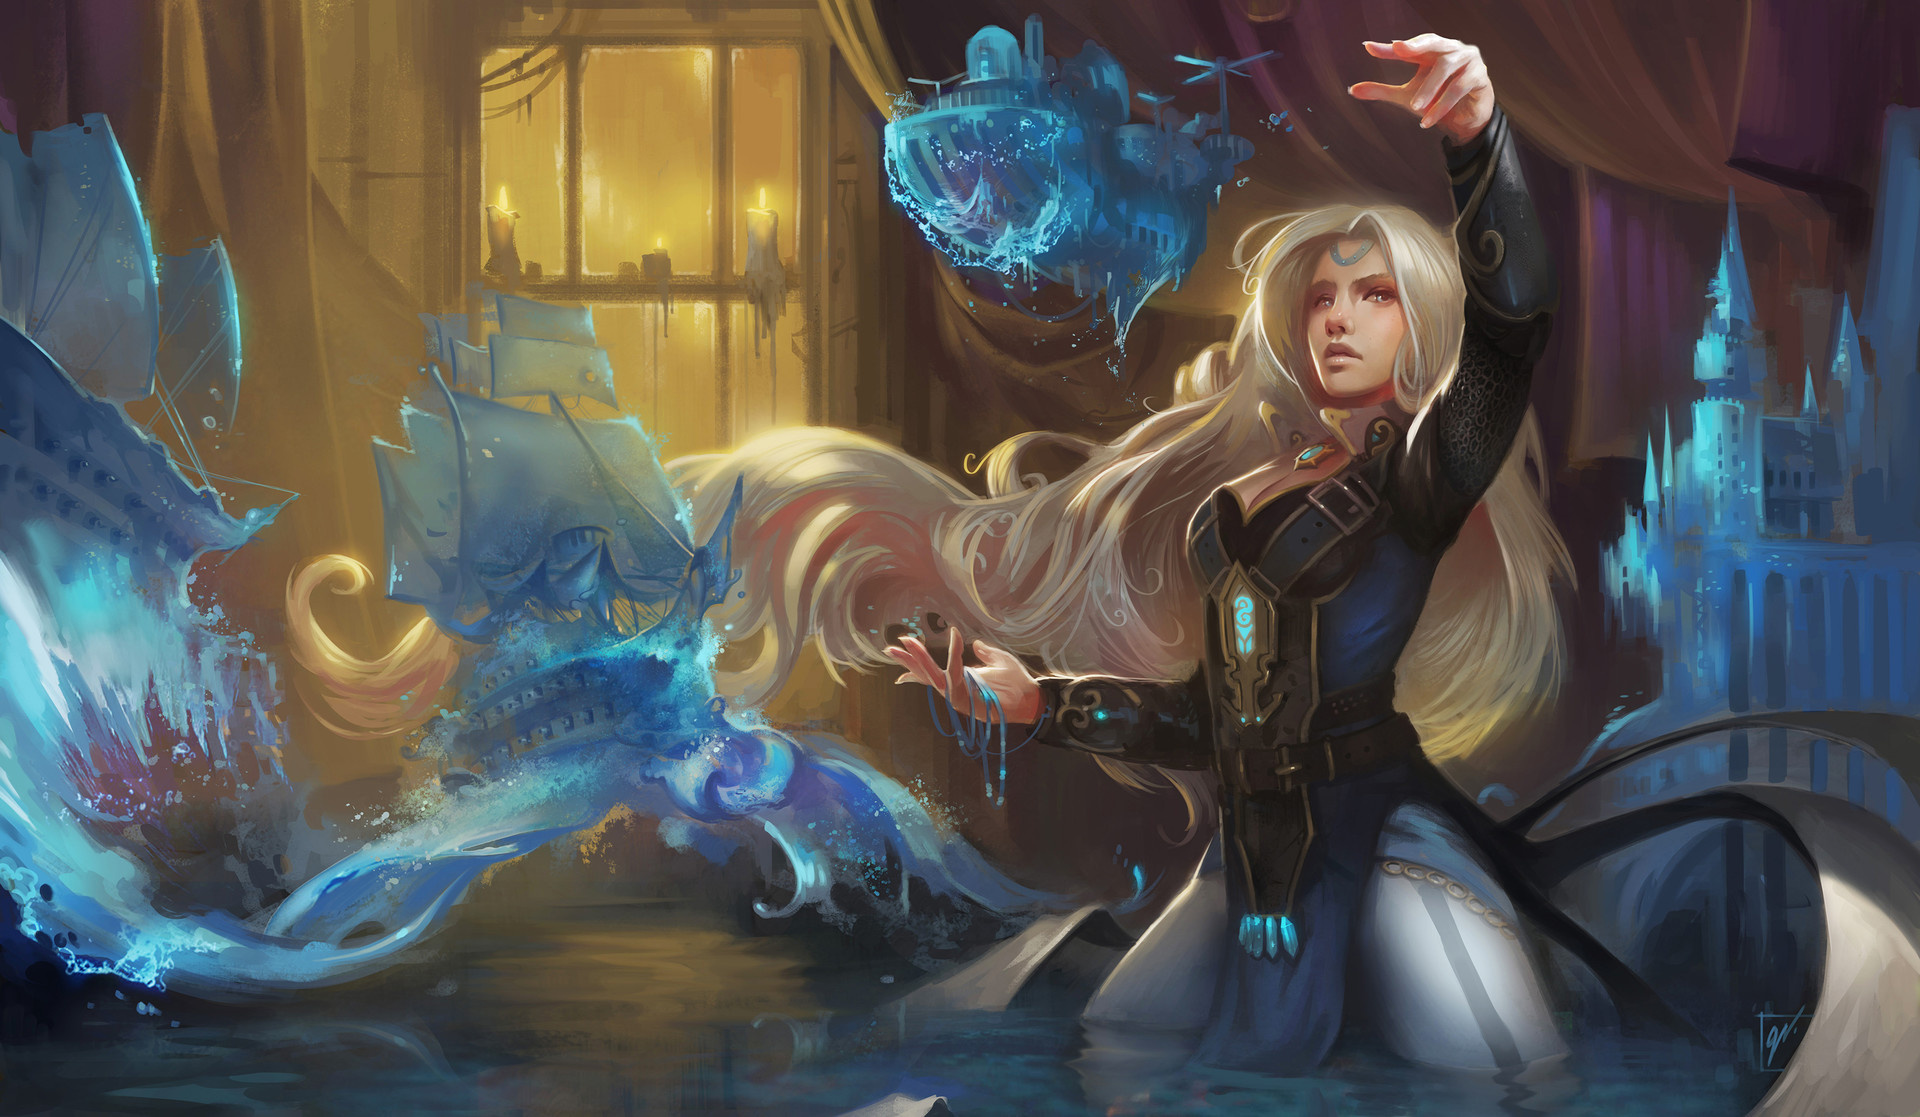 Dave Greco Digital Painting Crowfall Ethama Water sculptor mage